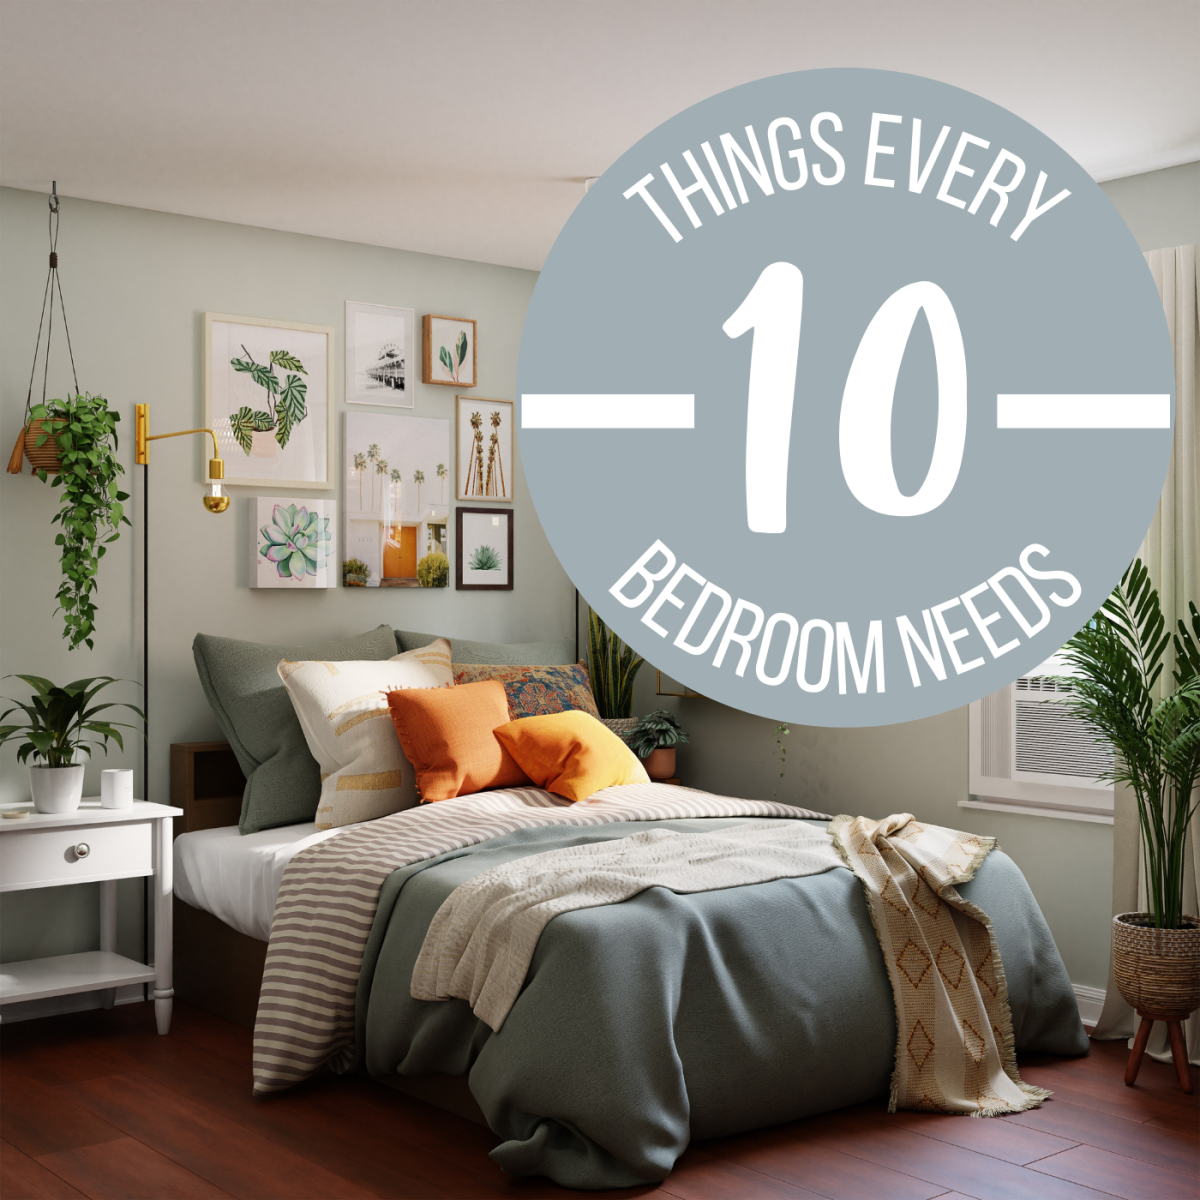 These ten items are must-haves for a cozy bedroom.